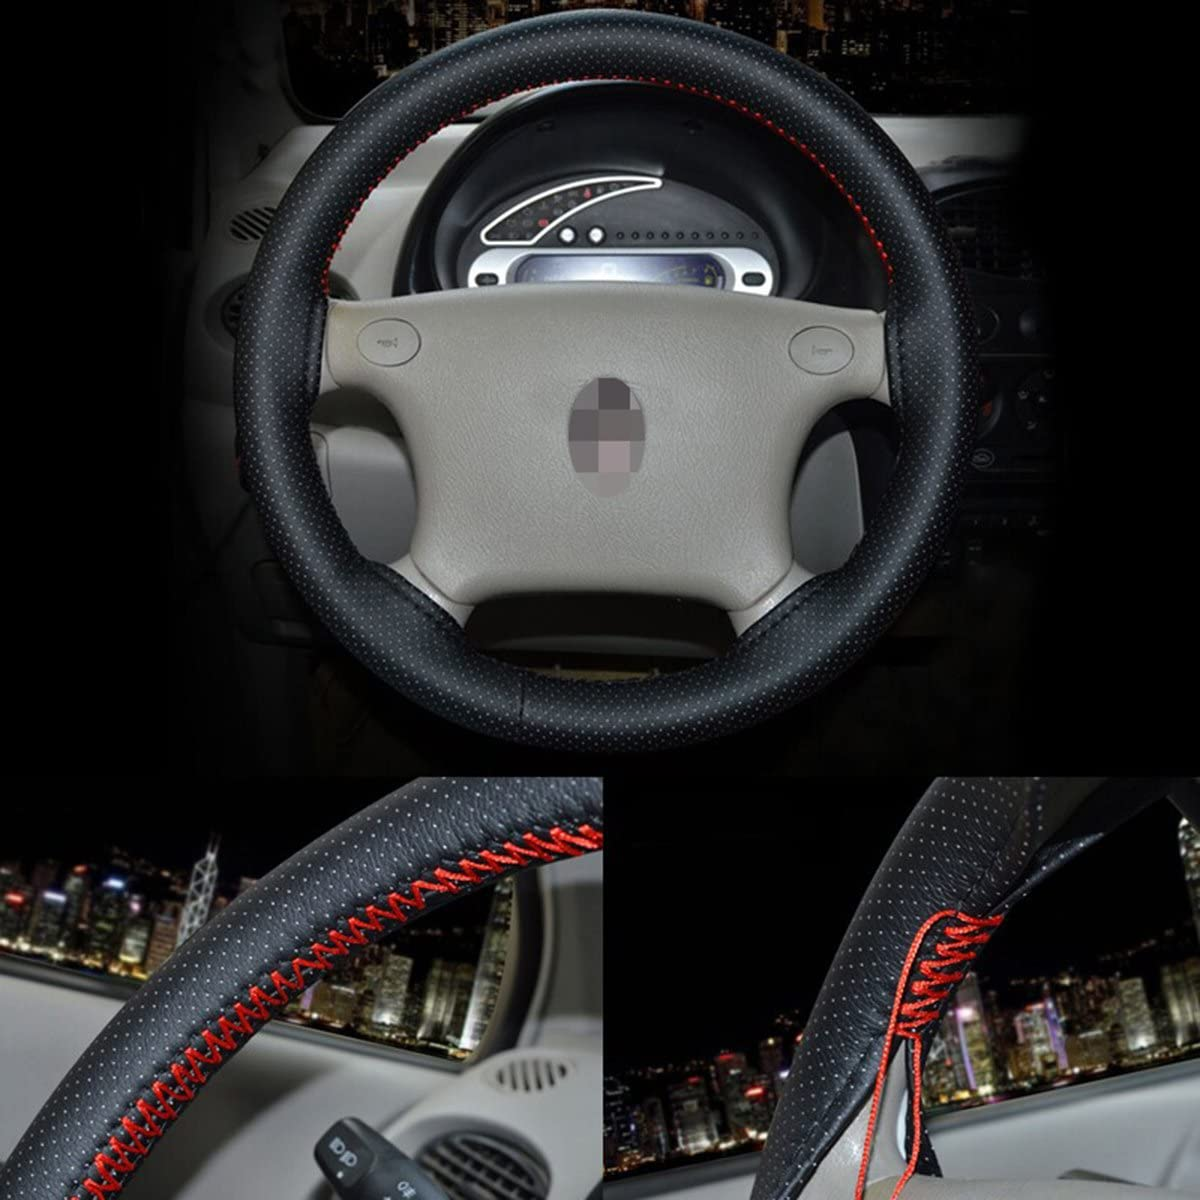 SZSS-CAR Universal Microfiber Leather Auto Car Steering Wheel Cover Anti Slip 15 Stitch on Wrap Cover with Needle Thread for Audi VW BMW. Gray